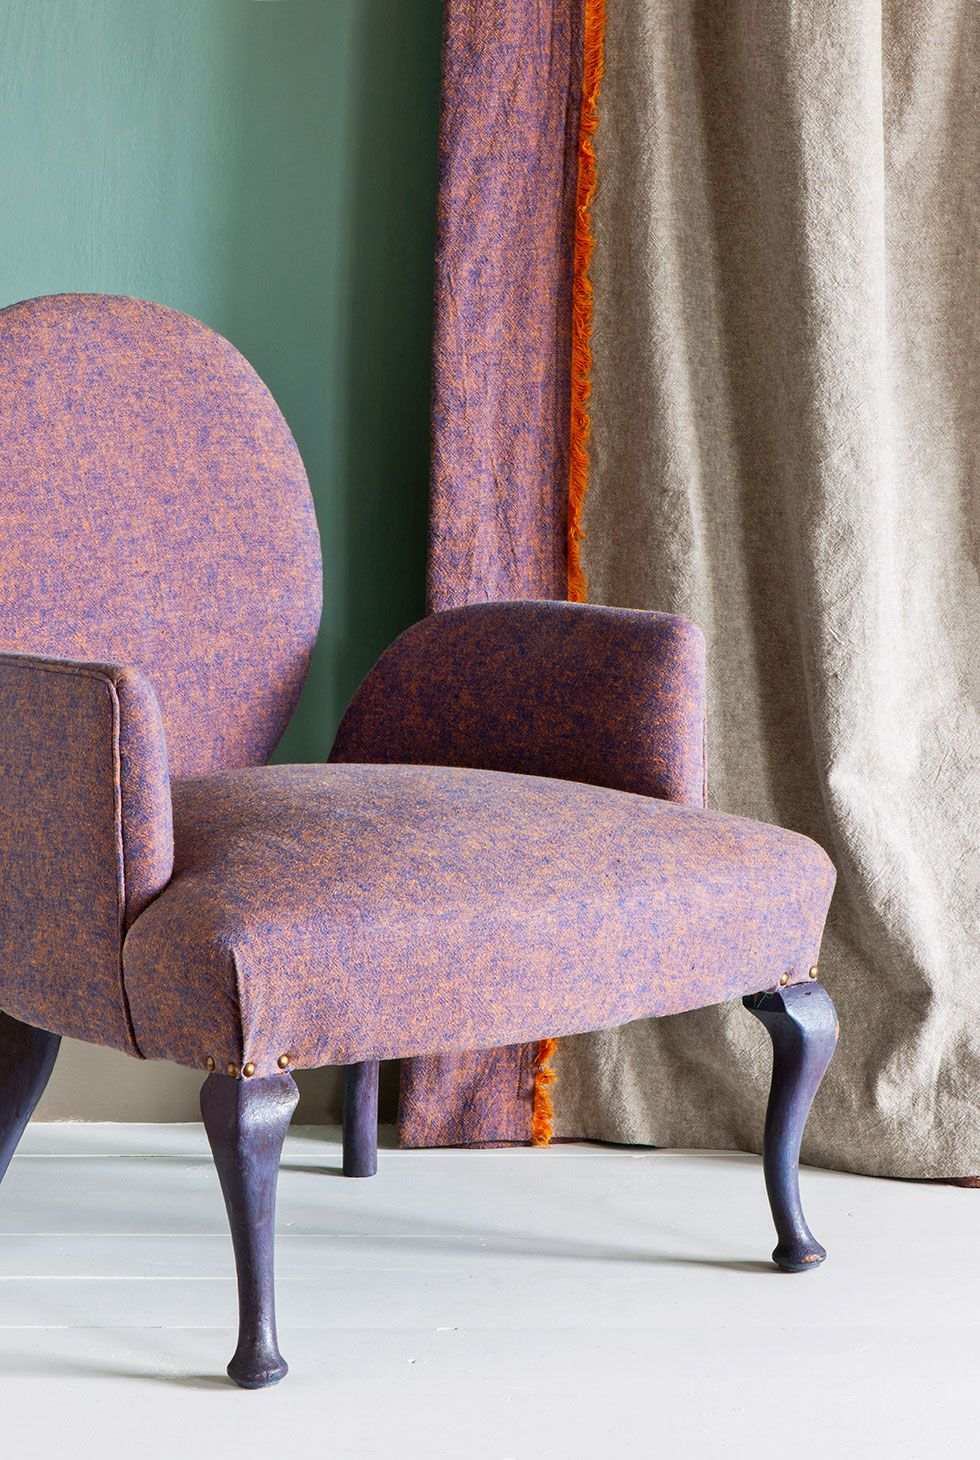 Napoleonic blue barcelona orange napoleonic blue annie sloan napoleonic blue barcelona orange from the annie sloan coloured linen fabric collection the 10 gumiabroncs Image collections